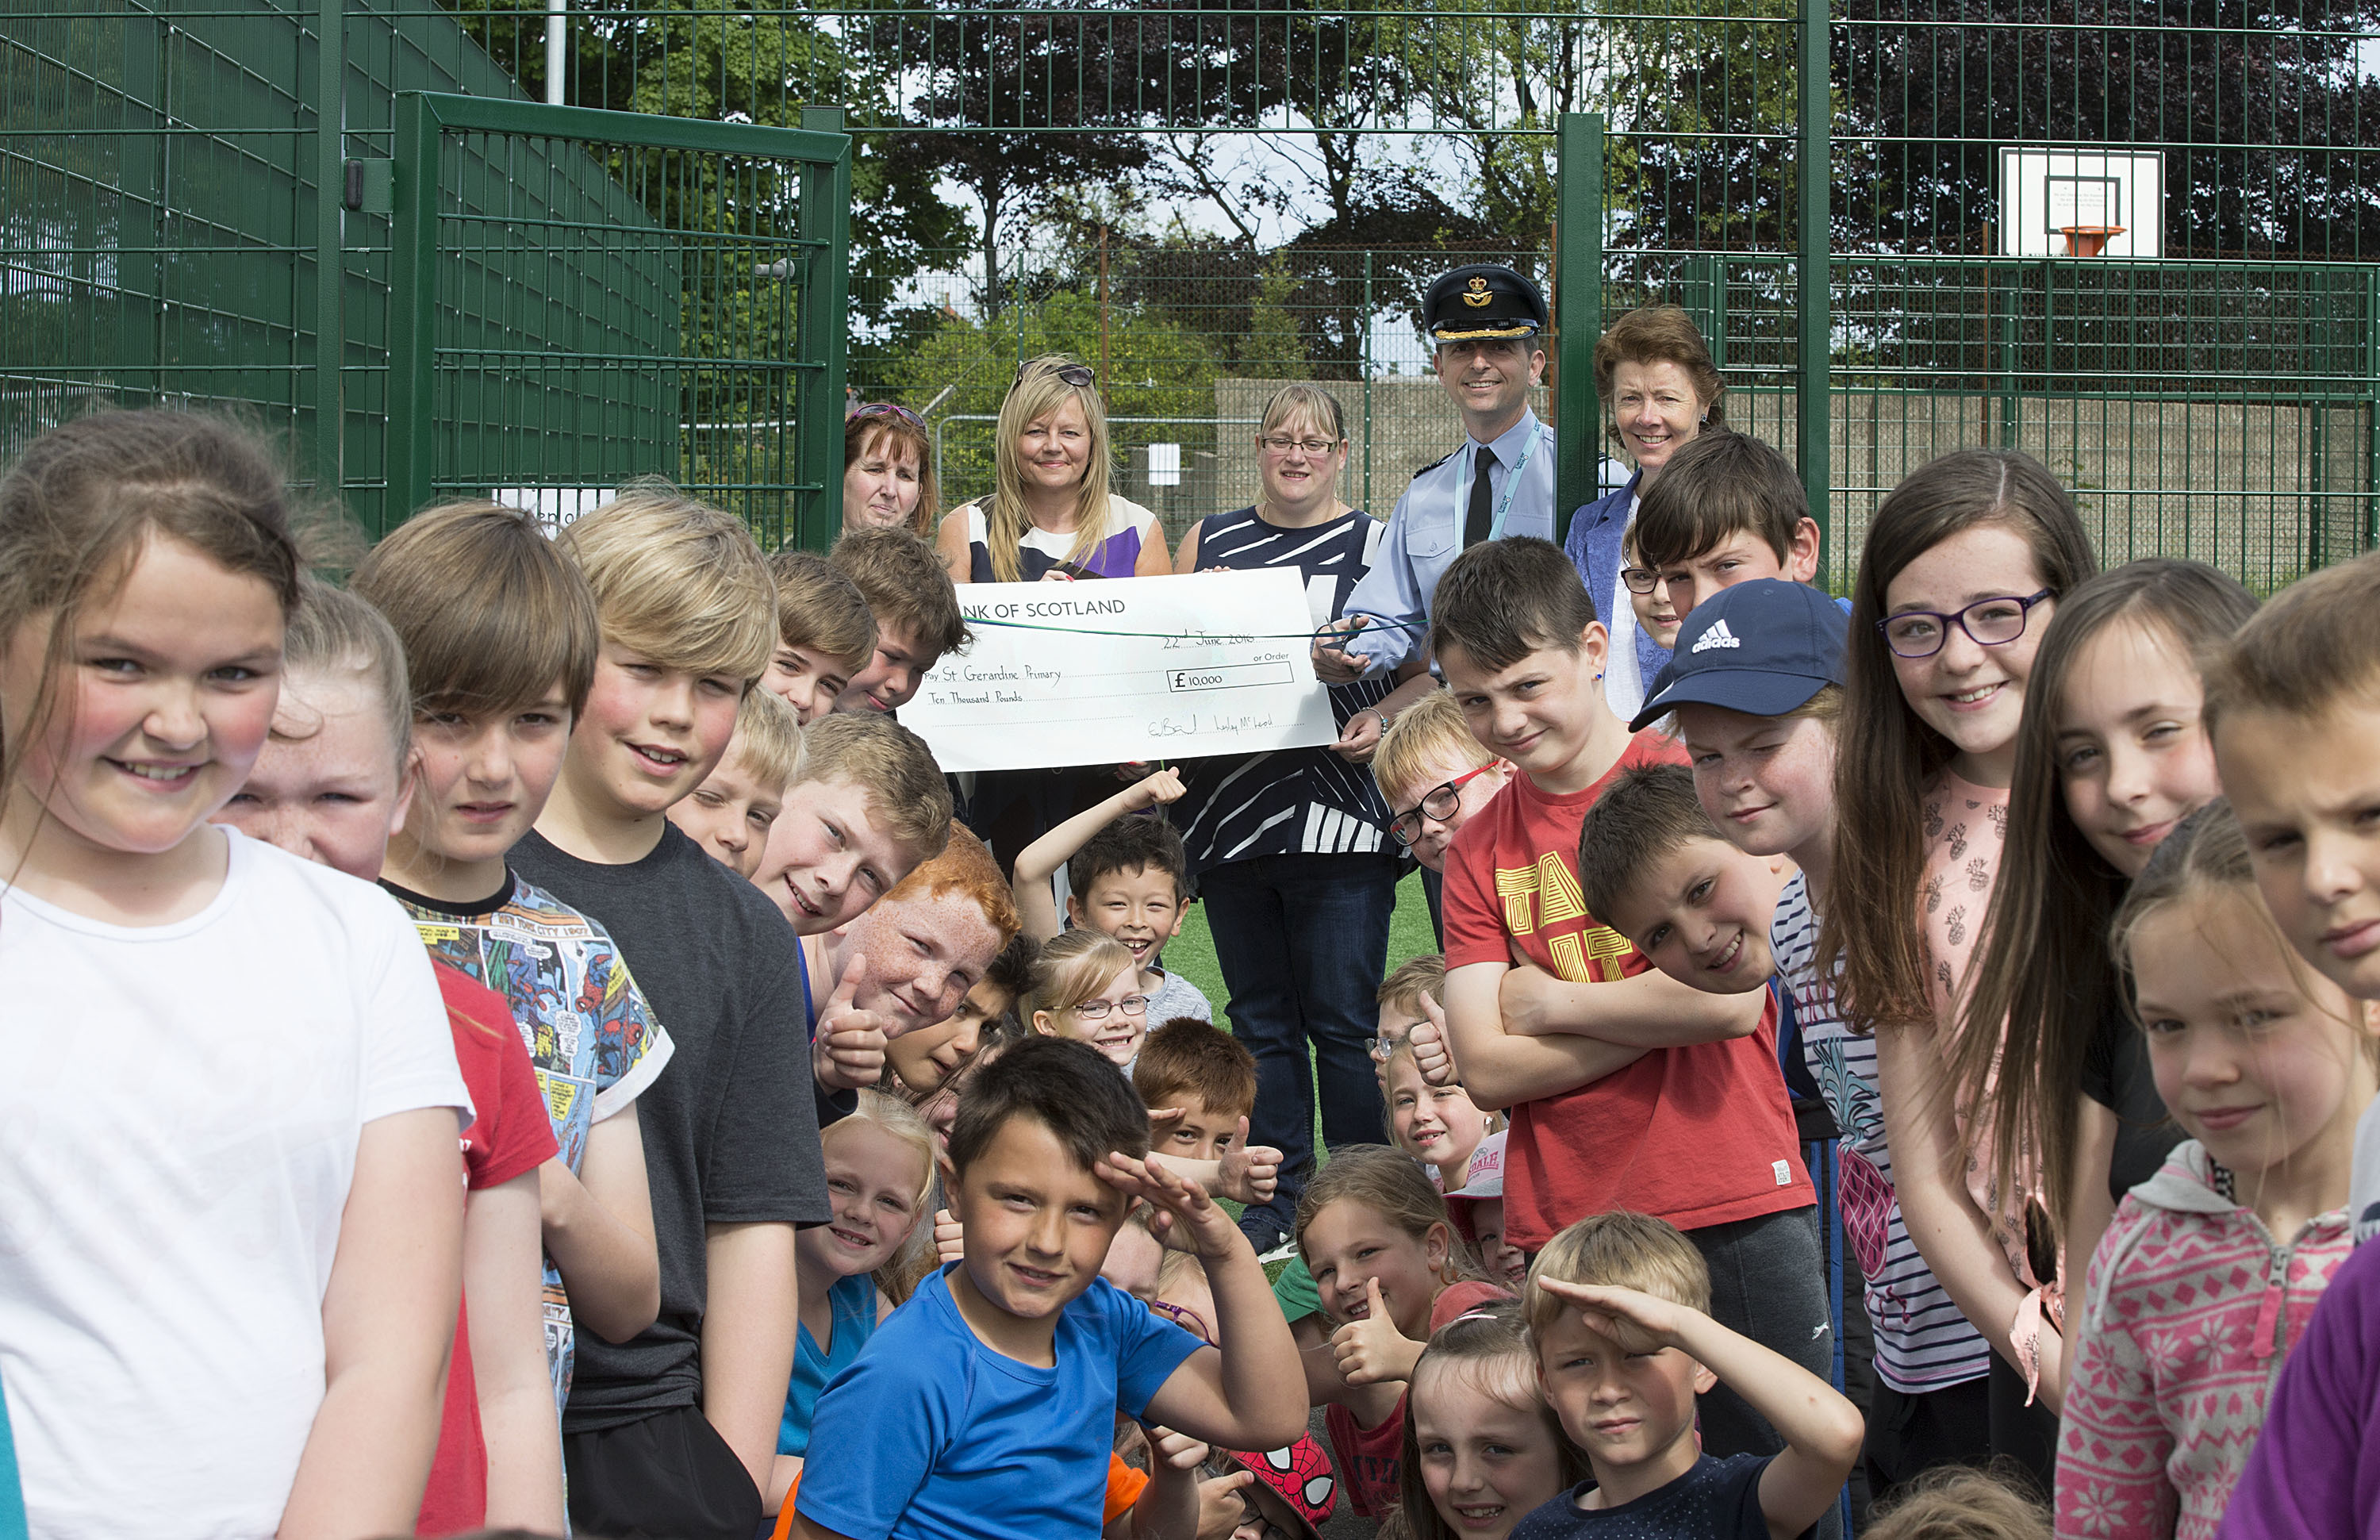 Group Captain Paul Godfrey visited St Geradine Primary School in Lossiemouth this week to open their new Multi Use Games Area (MUGA).  The MUGA has been jointly funded by a Community Covenant Grant, the Sportscotland Legacy 2014 Active Places Fund, and money raised by the School's Parent Council.  Job no:los-16-0456 Date: 22 jun 16 Description: Originator: Section: Ex:  *For more Information Contact Photographic Section, RAF Lossiemouth, IV31 6SD. Tel: 01343 817191  Crown Copyright: This image may be used for current news purposes only.  It may not be used, reproduced or transmitted for any other purpose without first obtaining a copyright license available from the MoD, Crown Copyright Unit. ipr-cc@dpa.mod.uk Job no: los_10_0  Date: (Day)/(Month)/2010 Description: Originator: Section: Ex:  *For more Information Contact Photographic Section, RAF Lossiemouth, IV31 6SD. Tel: 01343 817191  Crown Copyright: This image may be used for current news purposes only.  It may not be used, reproduced or transmitted for any other purpose without first obtaining a copyright license available from the MoD, Crown Copyright Unit. ipr-cc@dpa.mod.uk